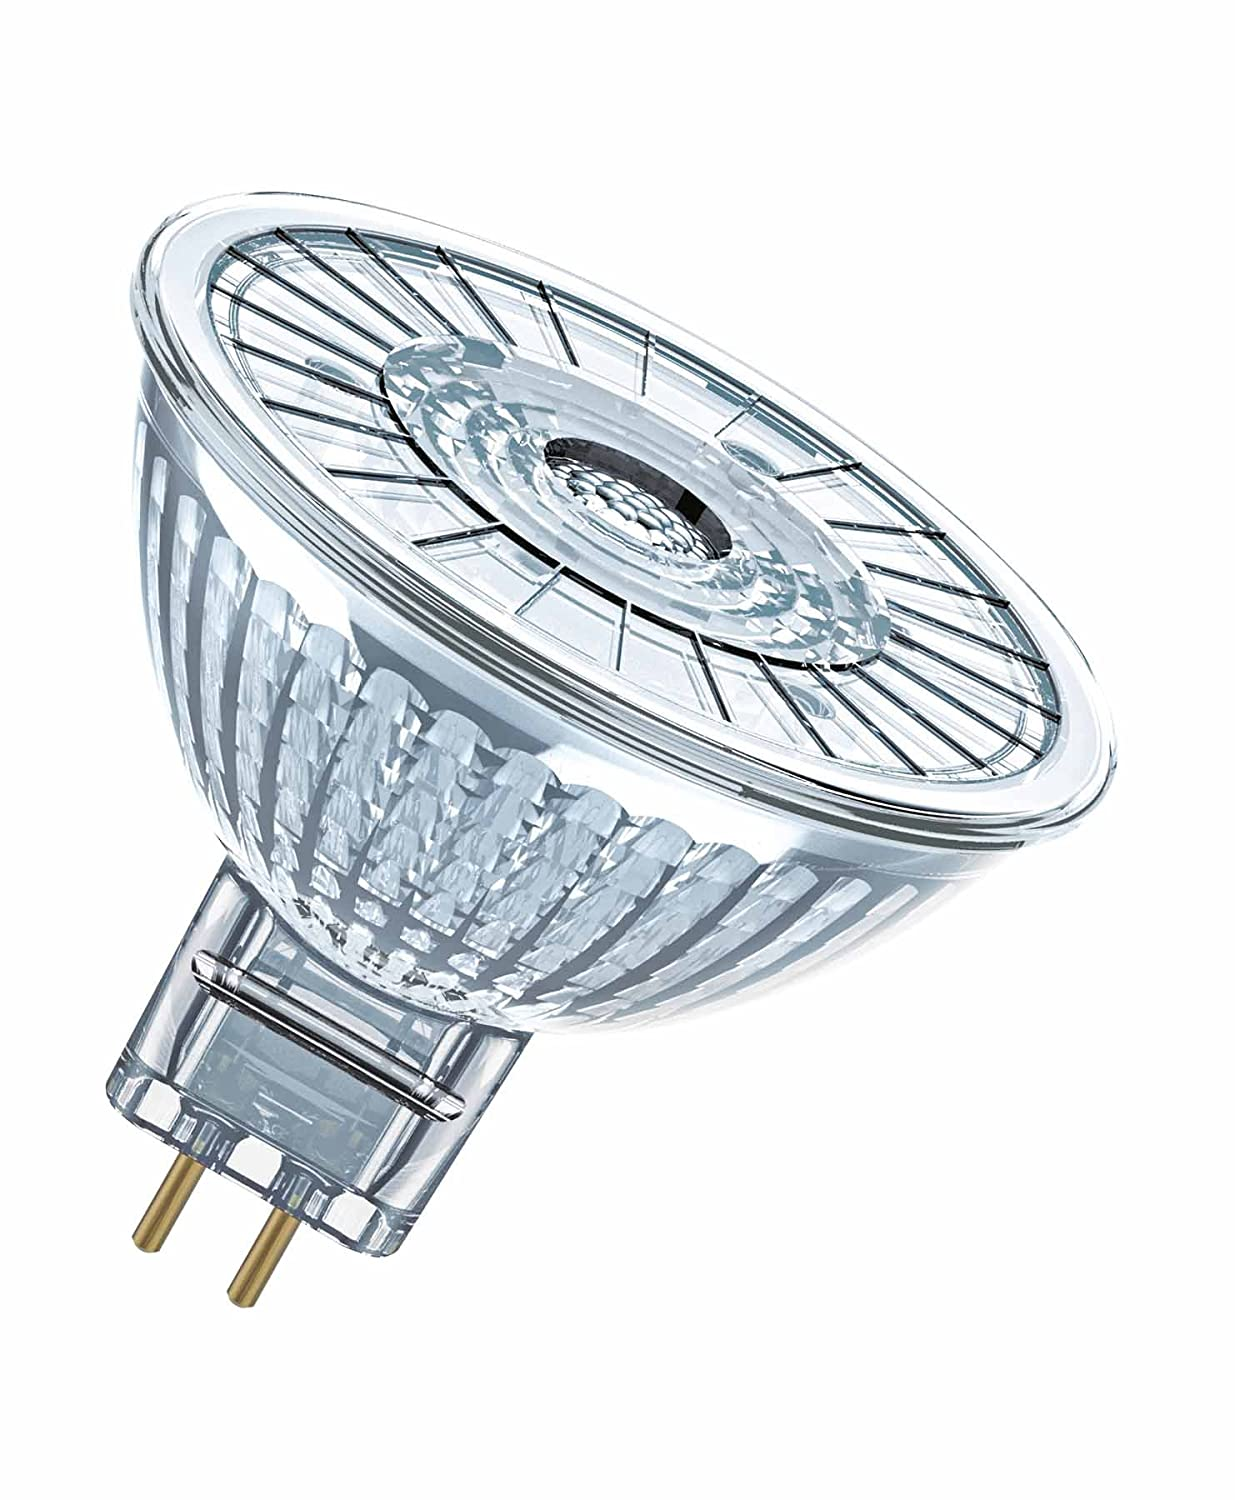 Angle : 36/° Dimmable OSRAM LED SUPERSTAR MR16 // Spot LED Lot de 10 pi/èces Blanc Chaud 2700K 7,8W Equivalent 50W 12 V Culot GU5.3